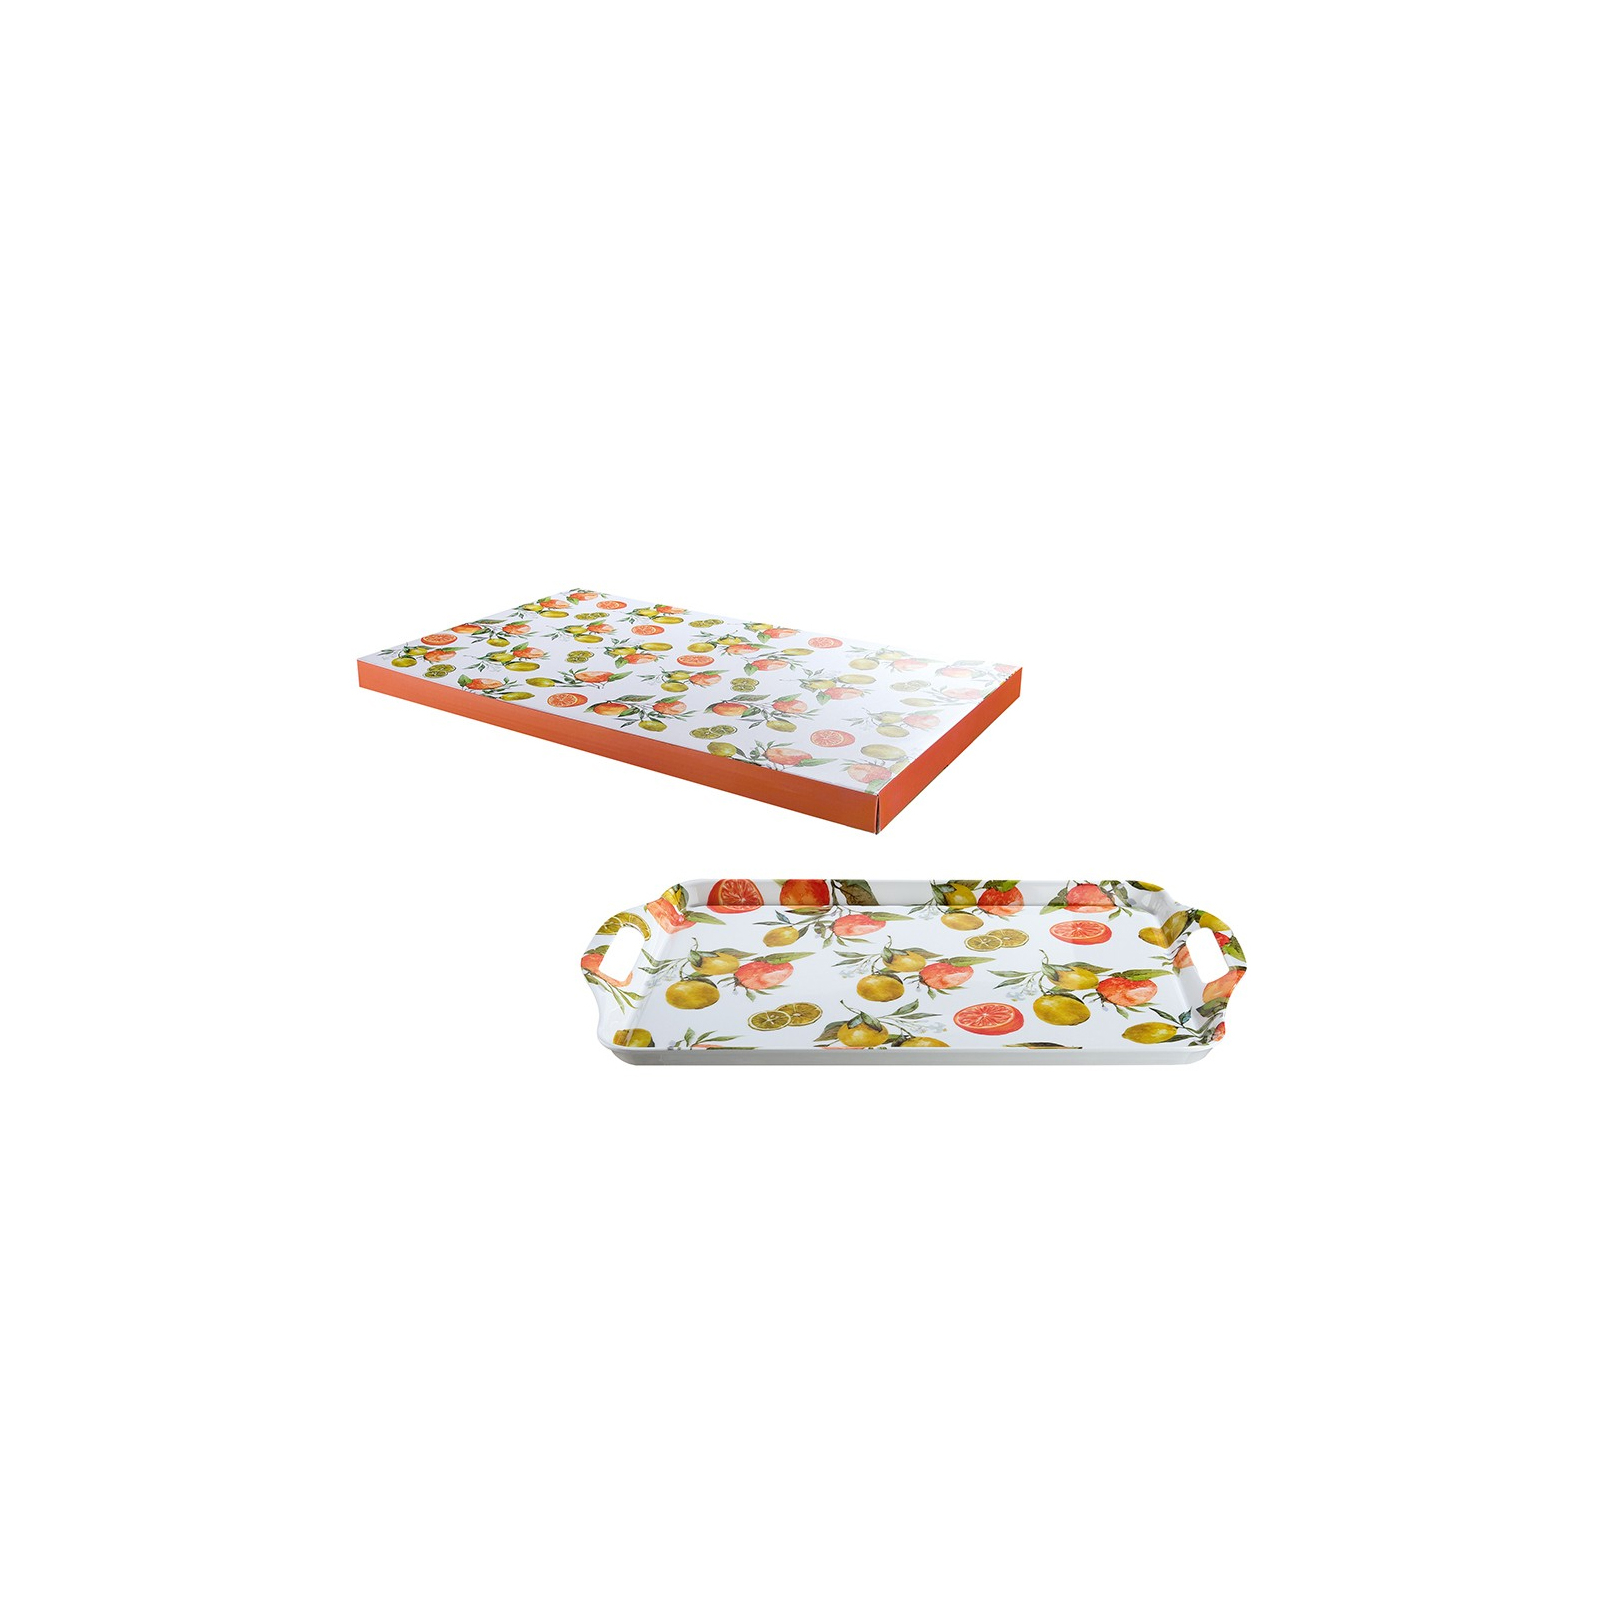 Tablett Serie Fresh Fruits 100% Melamin 48,5 x 29,5 x 2,5 cm